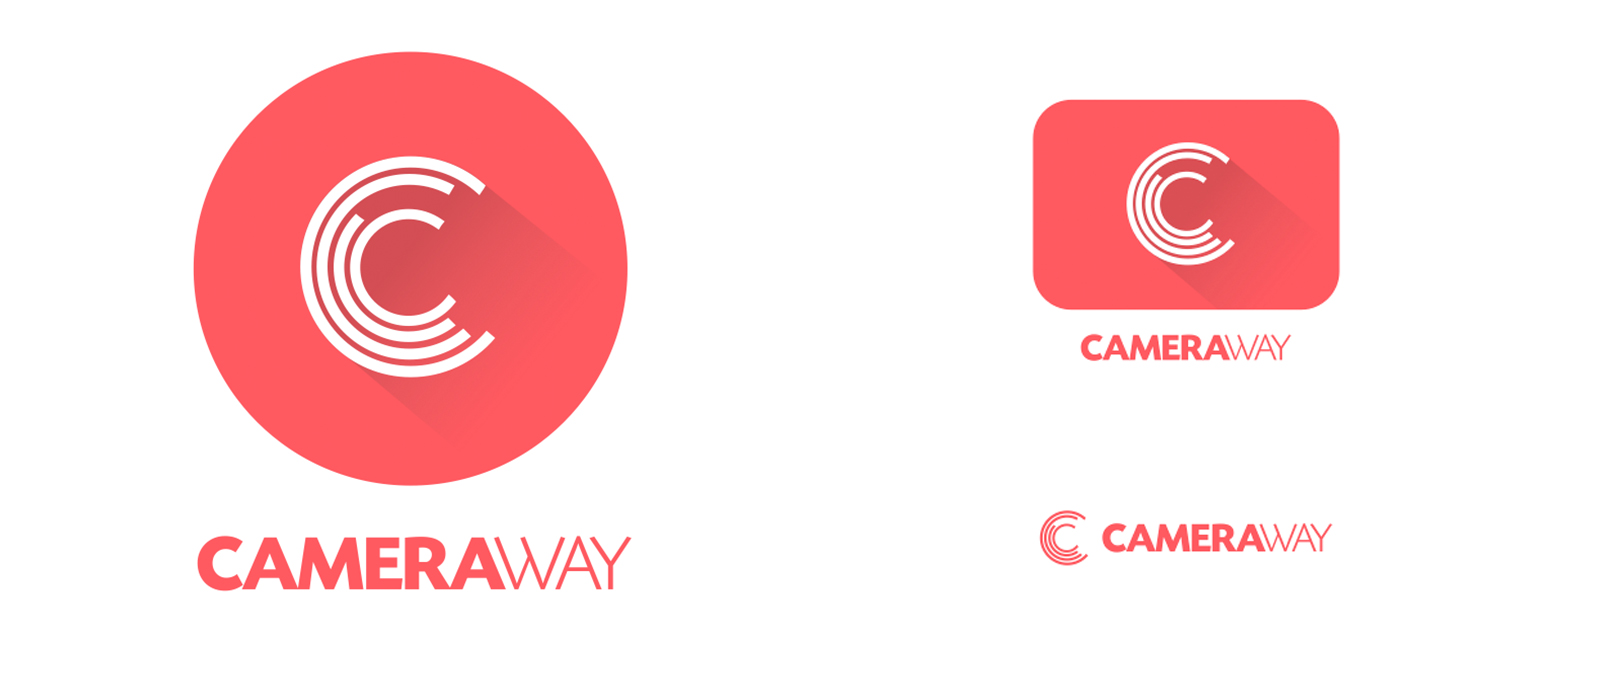 camera-way-logos-rk-estudio